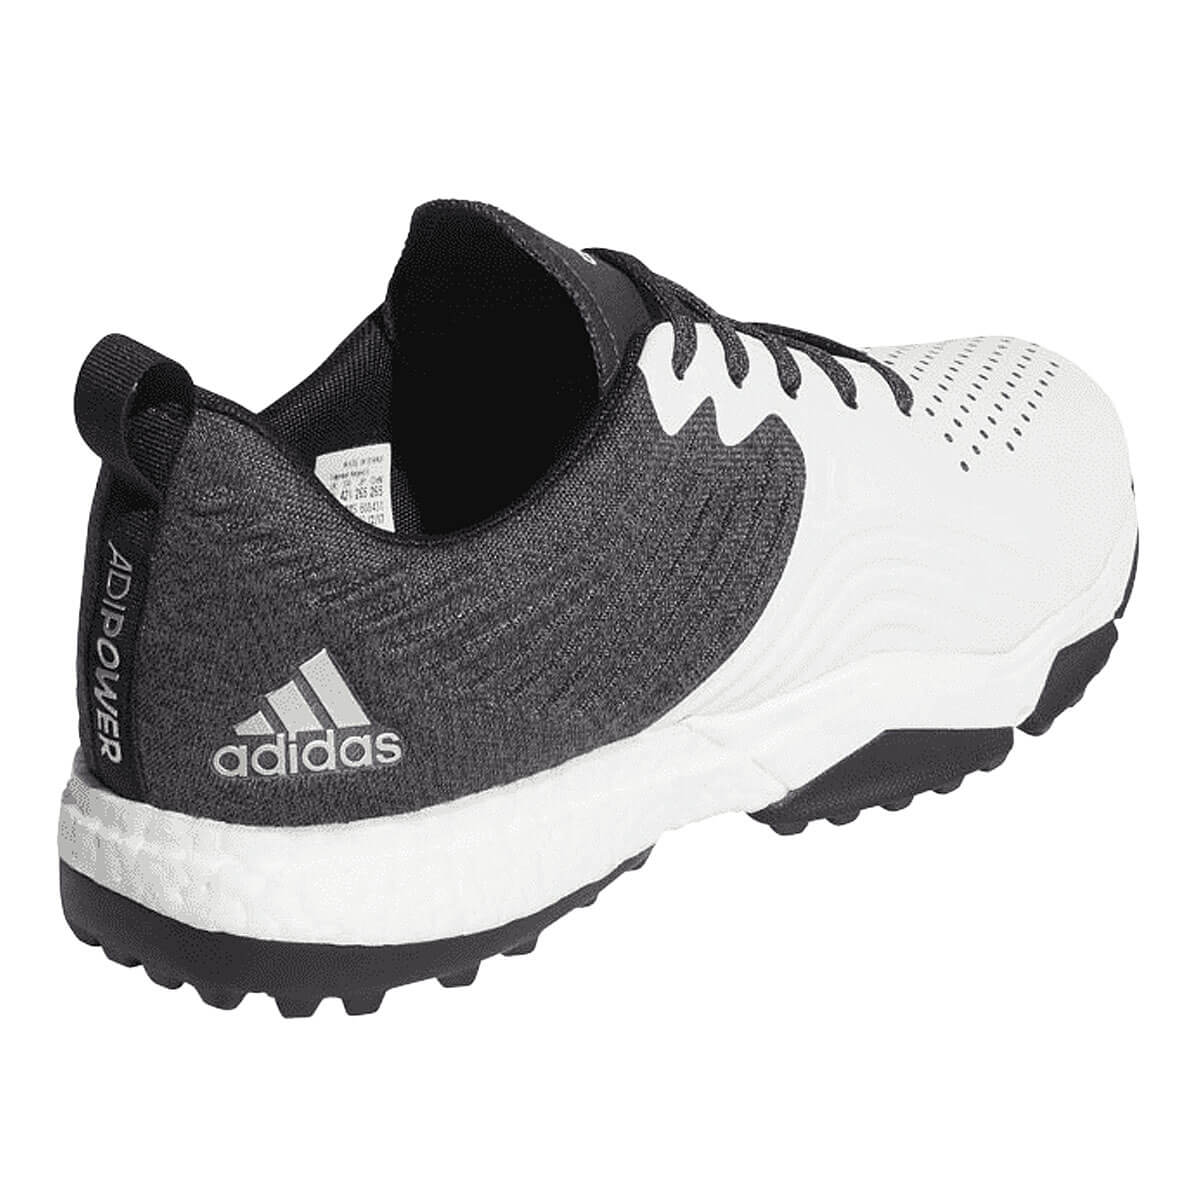 adidas-Golf-Mens-Adipower-Spikeless-BOOST-Stretch-Golf-Shoes-27-OFF-RRP thumbnail 3